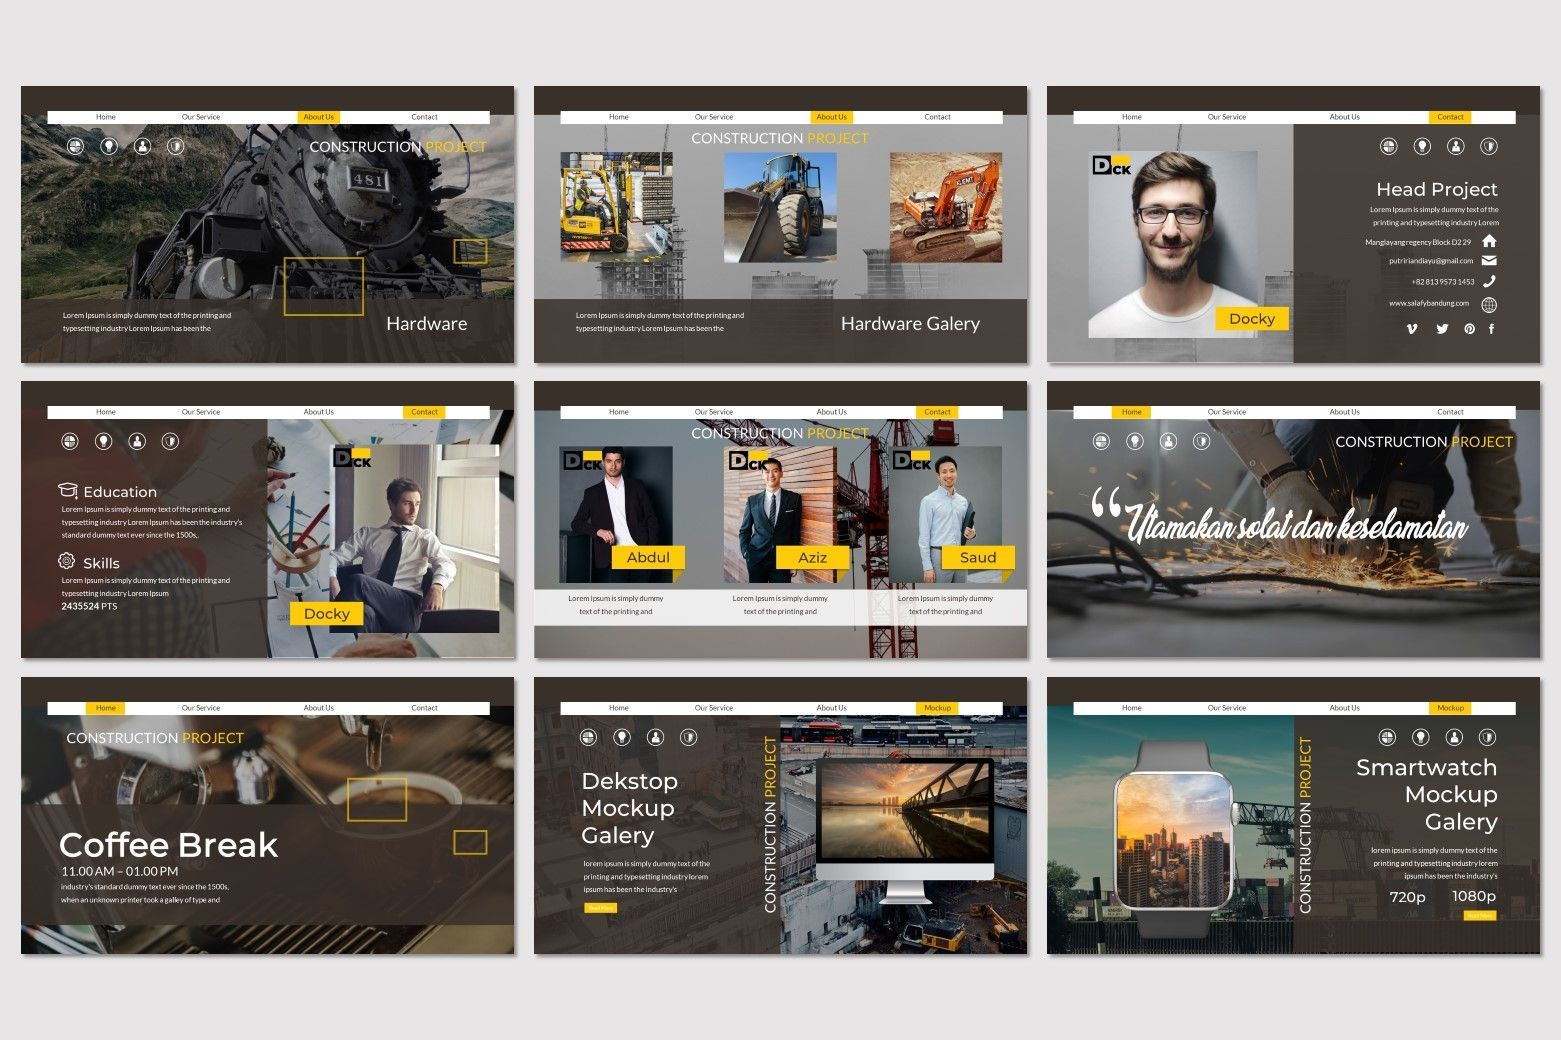 DCK - PowerPoint Template, Slide 4, 07271, Presentation Templates — PoweredTemplate.com